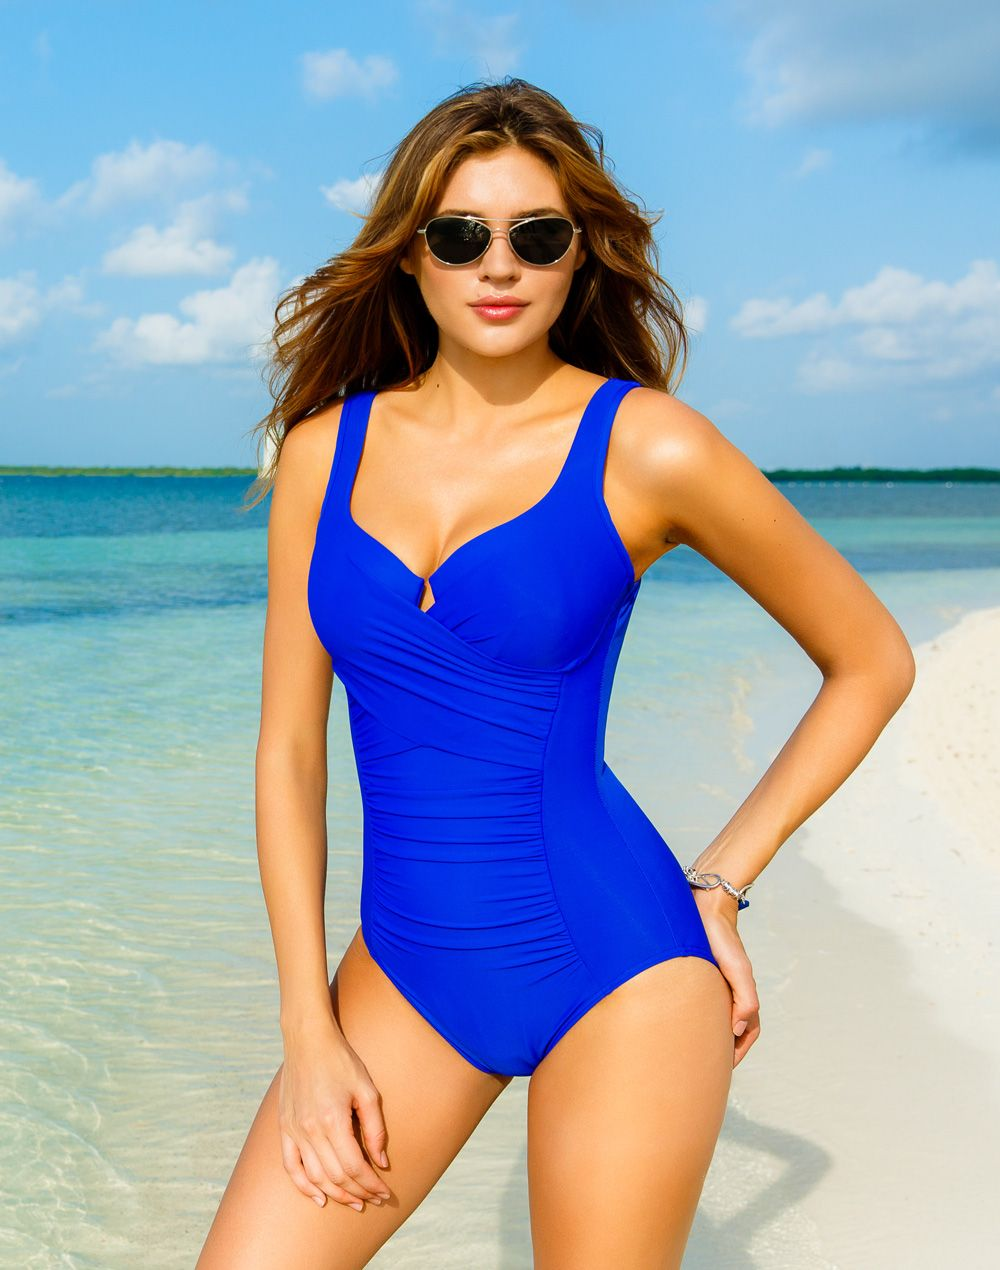 f5e9fd0dc9 The Ambrosia Solid Underwire Mio One Piece swimsuit by Miraclesuit. This  royal blue bathing suit is slimming and chic. Part of the exclusive 2015  summer ...